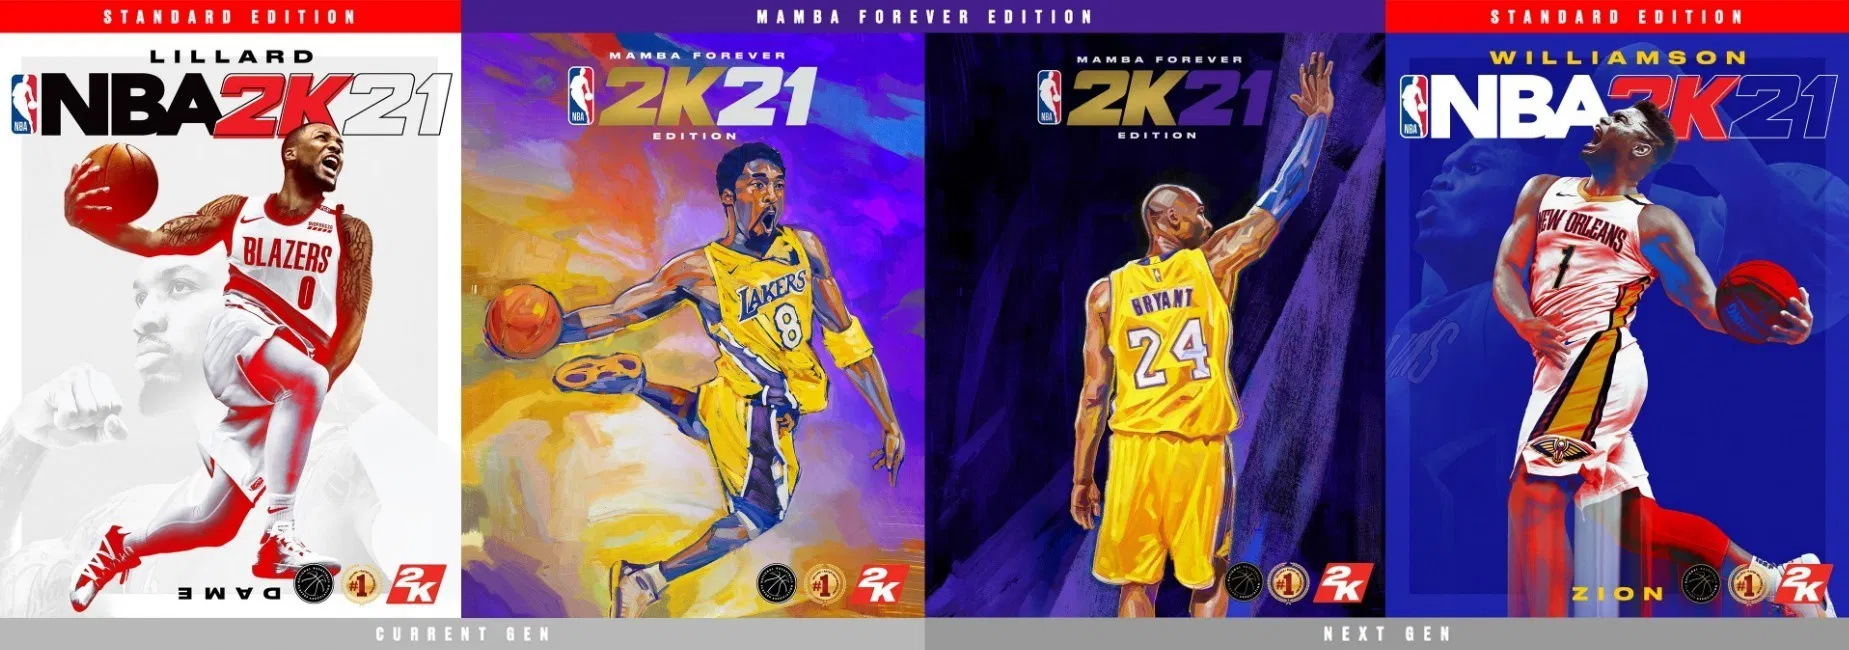 NBA 2K21 Release Date, Cover Athlete, Price and More